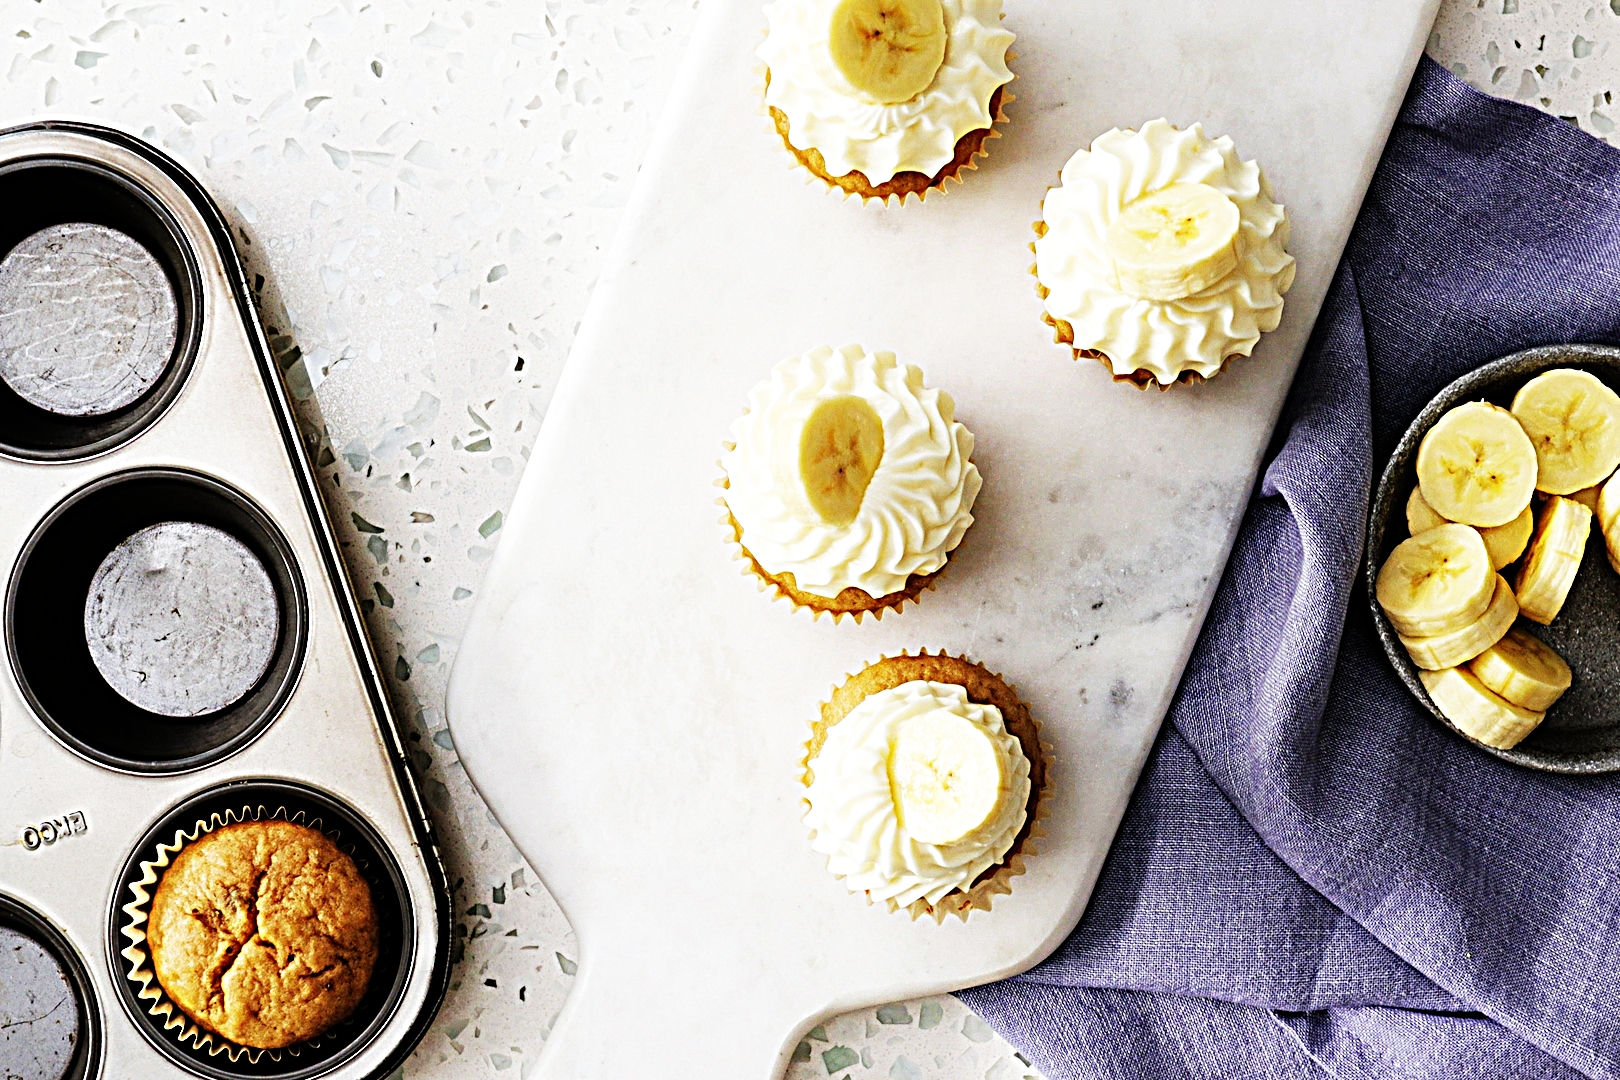 Stupid-Easy Recipe for Banana Cupcakes with Cream Cheese Frosting (#1 Top-Rated)